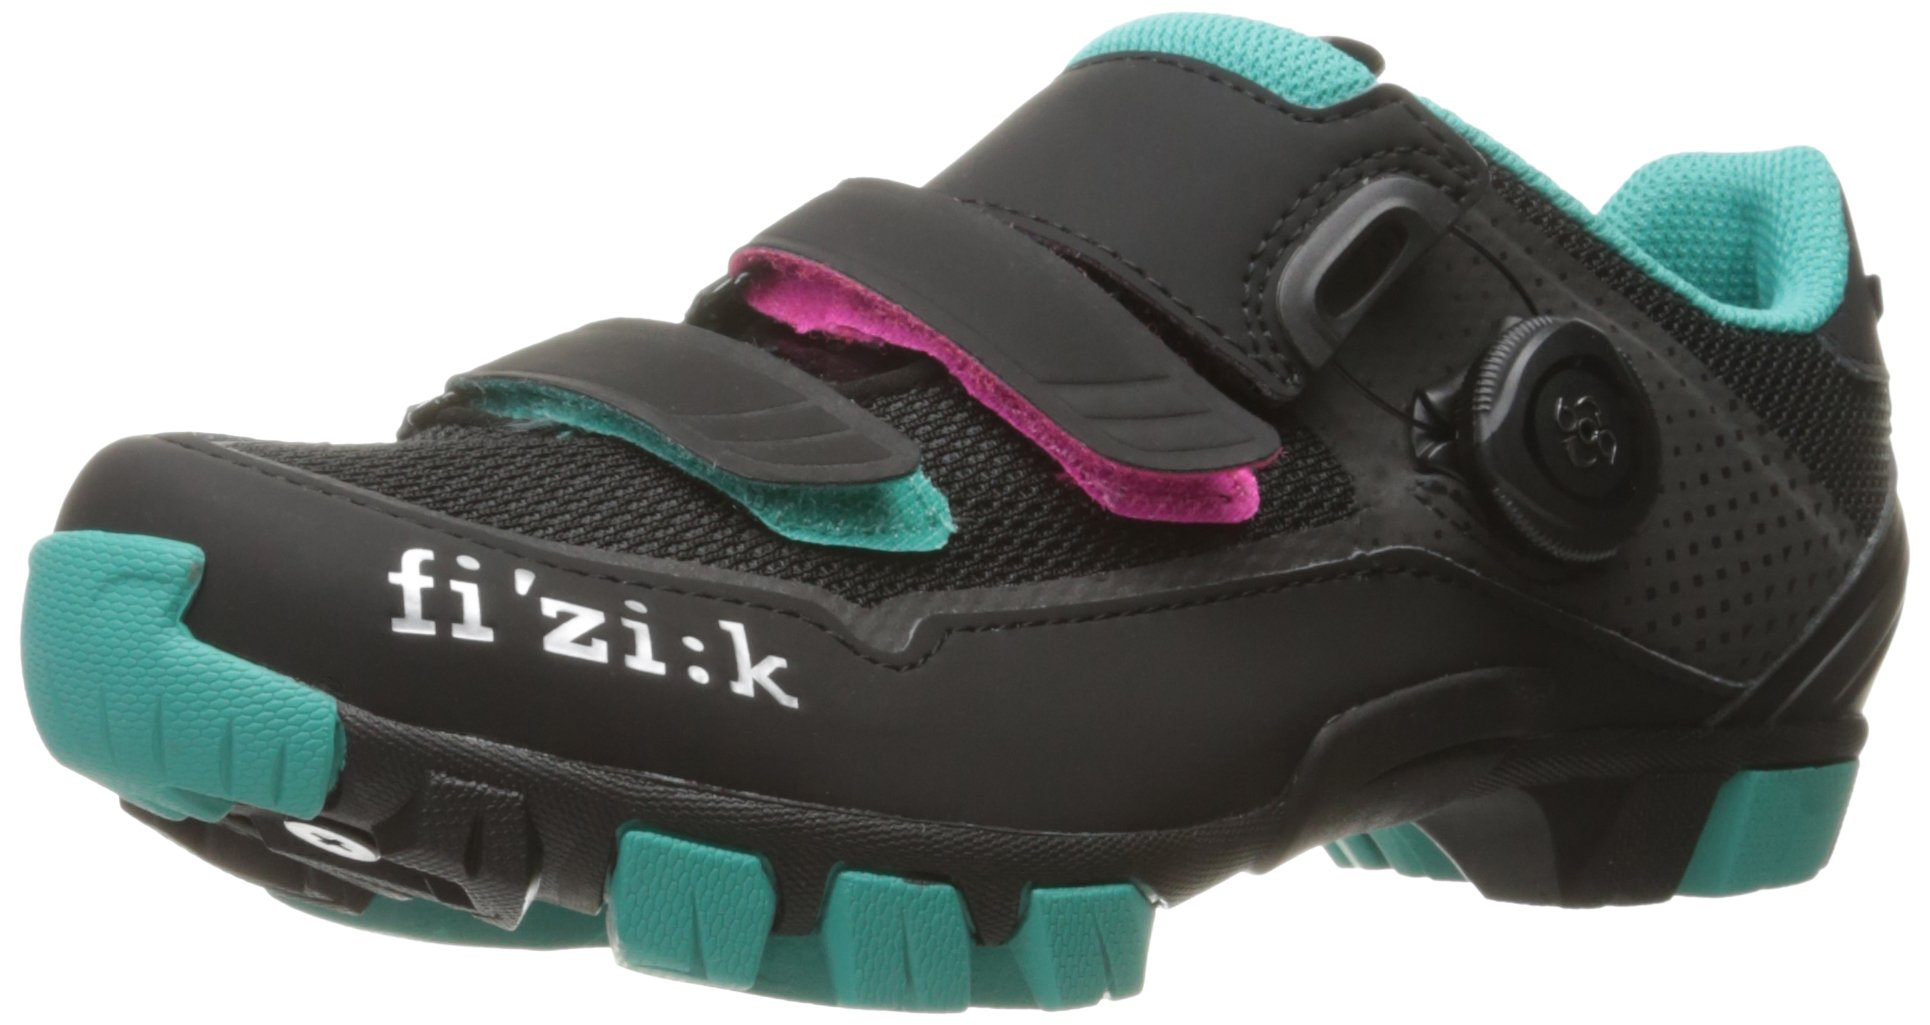 Fizik Women's M6 Donna BOA Mountain Cycling Shoes, Black/Anthracite/Emerald Green, Size 37.5  Black/Anthracite/Emerald Green by Fizik